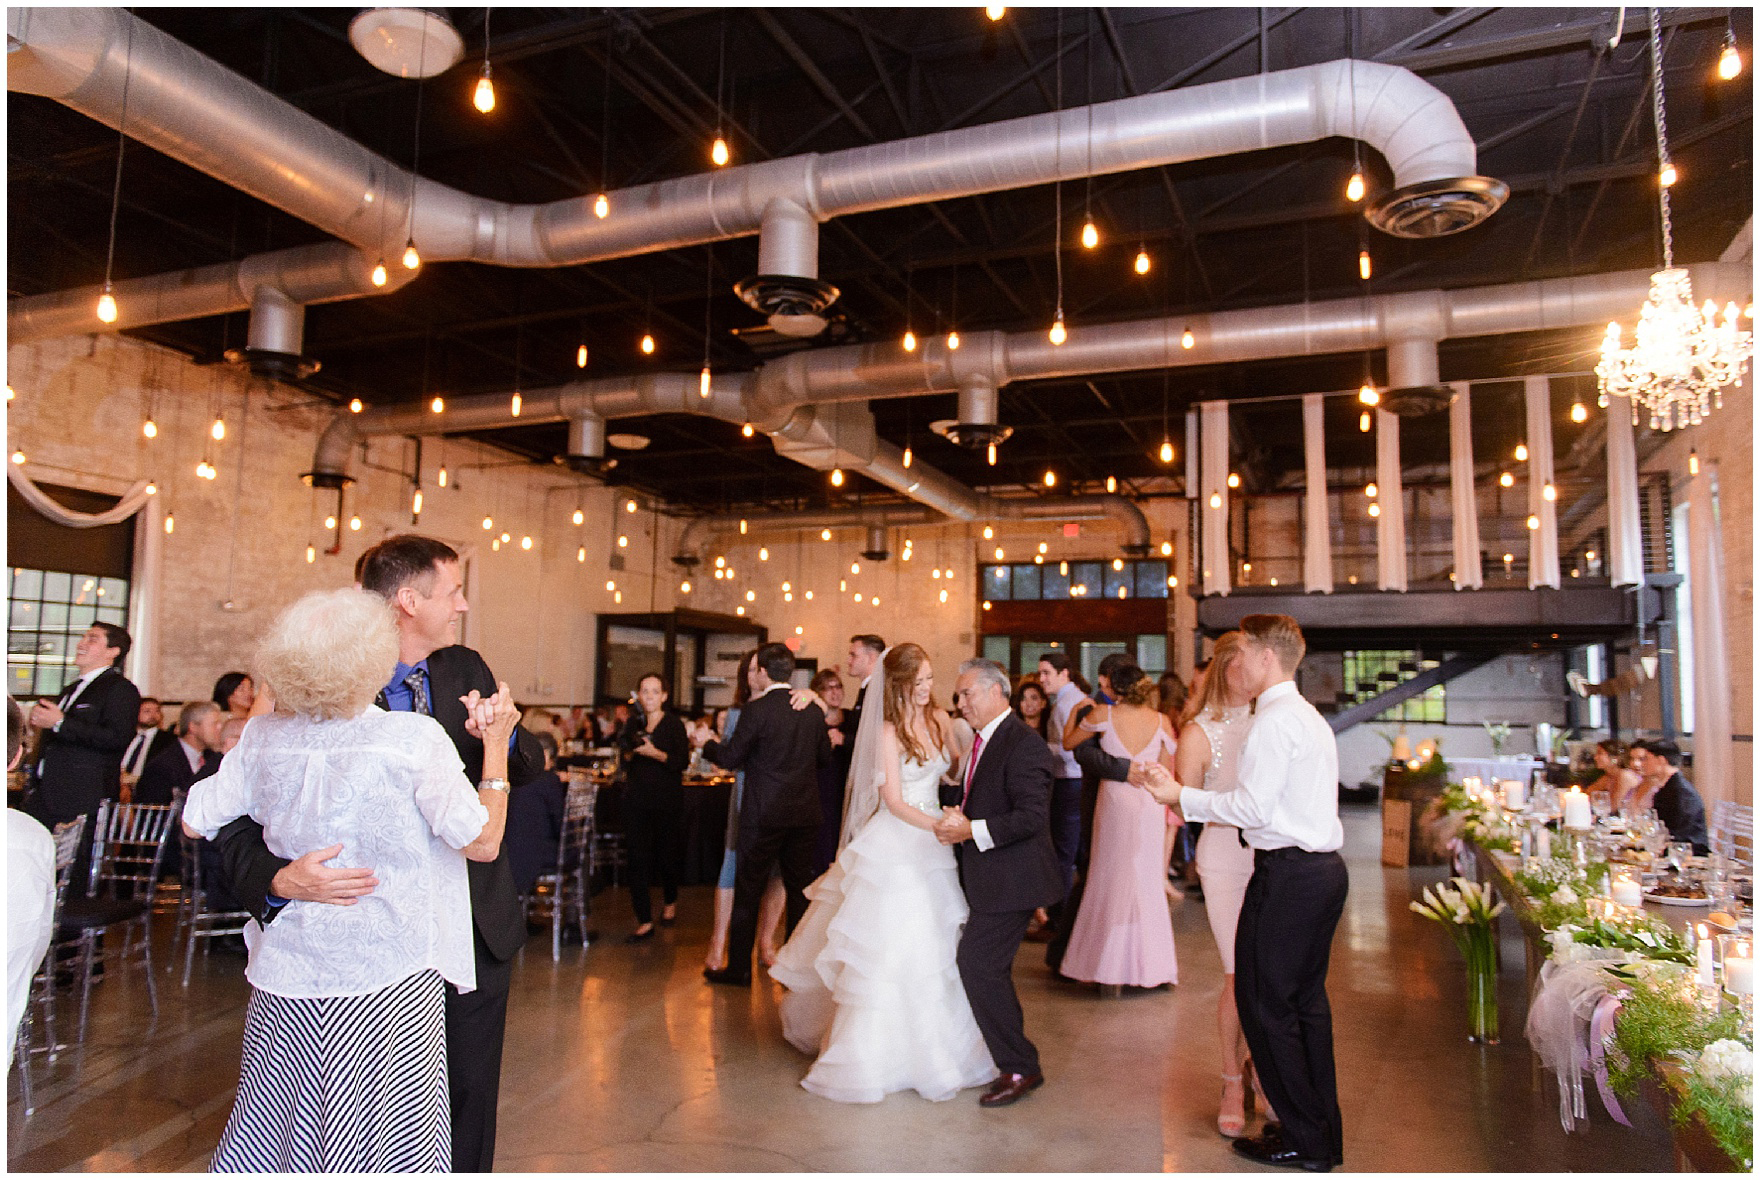 Guests dance during a wedding reception at The Brick in South Bend, following a University of Notre Dame wedding.